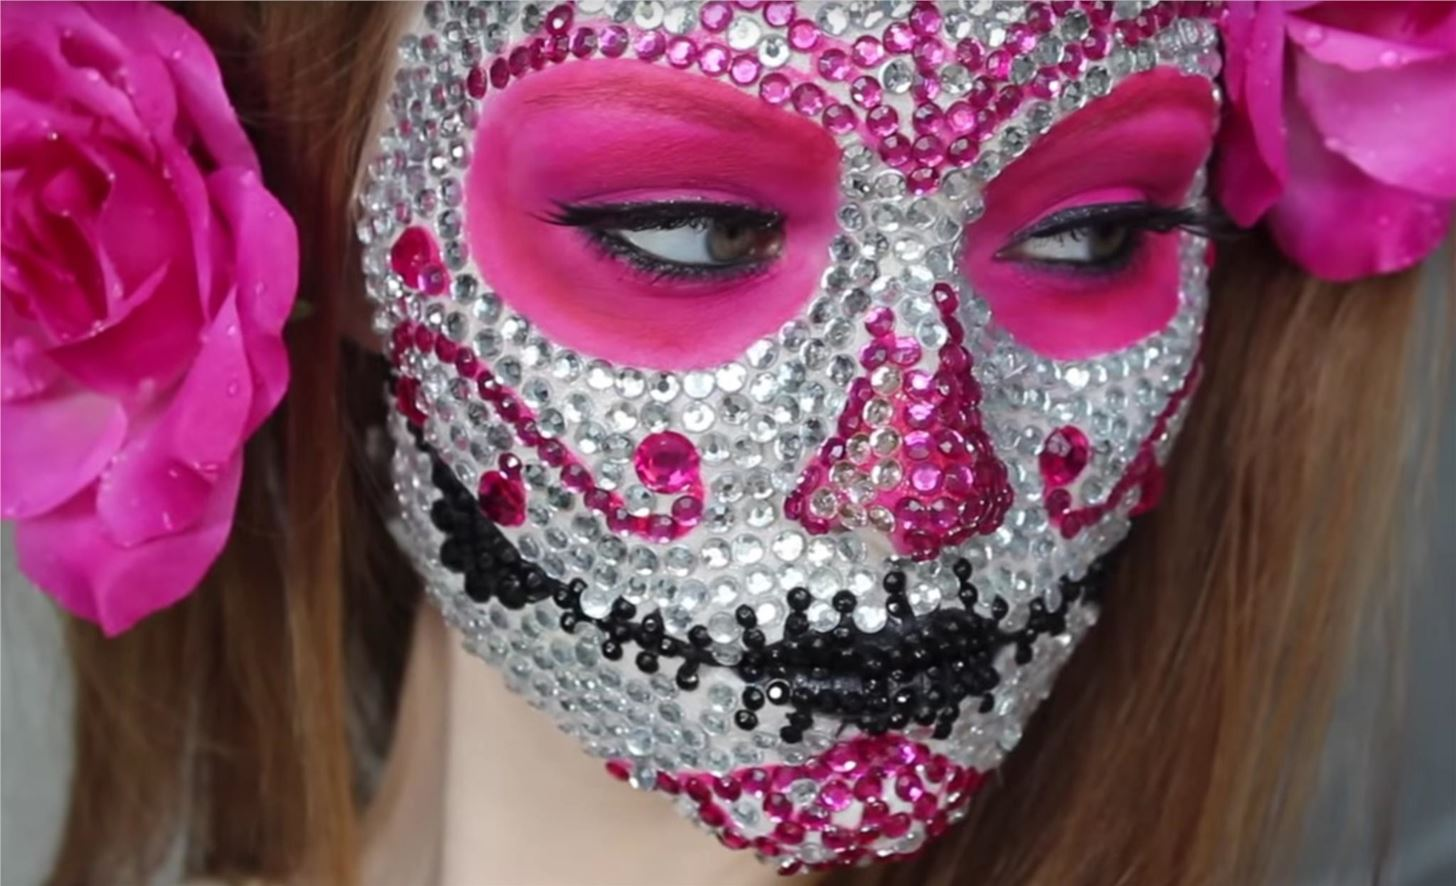 click here for even more sugar skull face painting ideas and make sure to share a picture of your version in the comments below